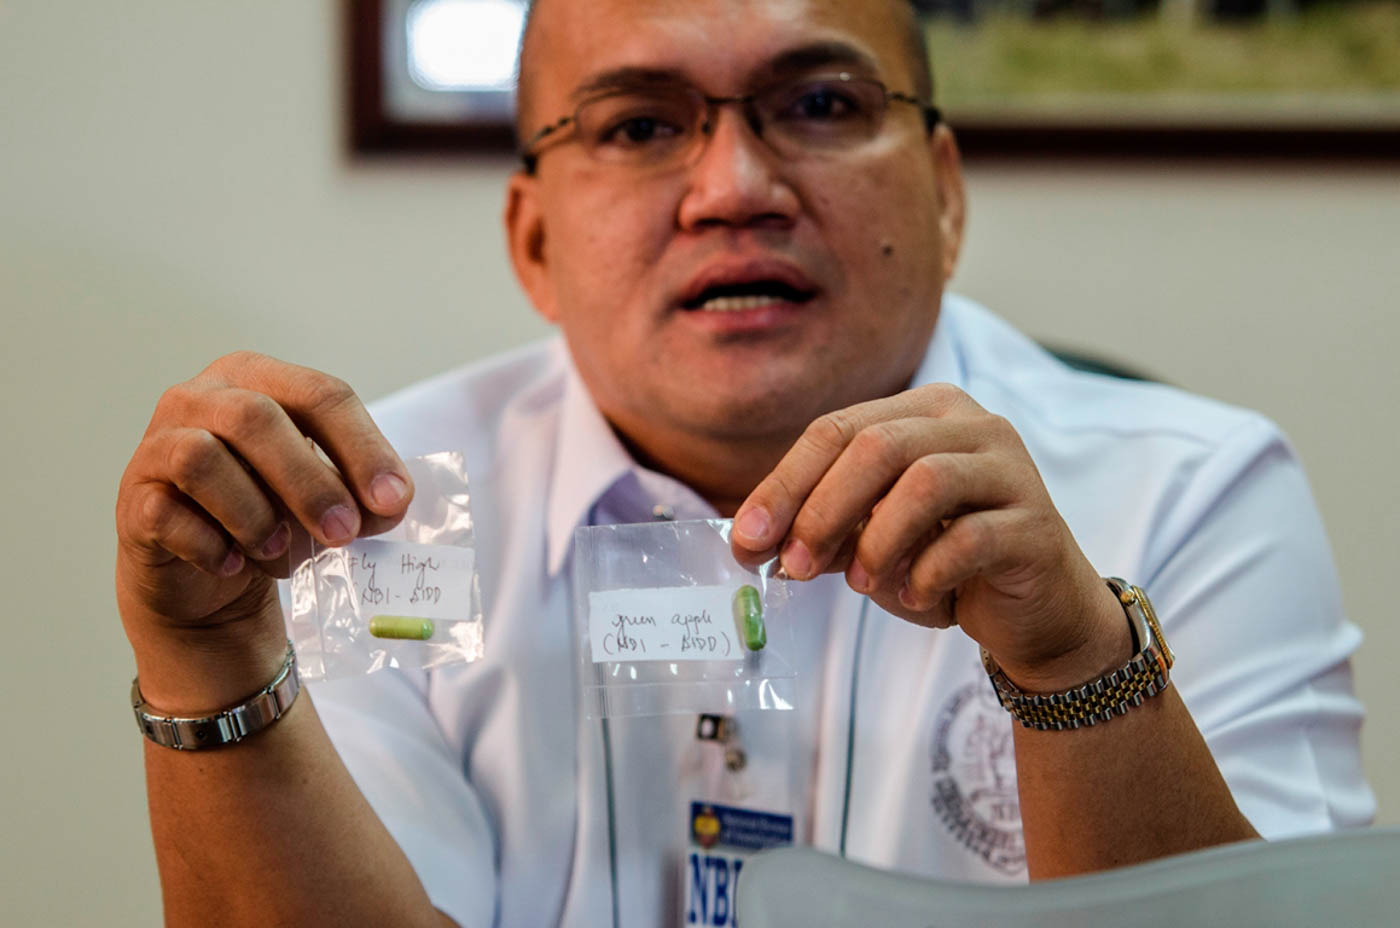 SAMPLE PARTY DRUGS. NBI Anti-Illegal Drugs Division chief Joel Tovera holds up samples of the 'fly high' and 'green apple' illegal designer drugs. Photo by Rob Reyes/Rappler